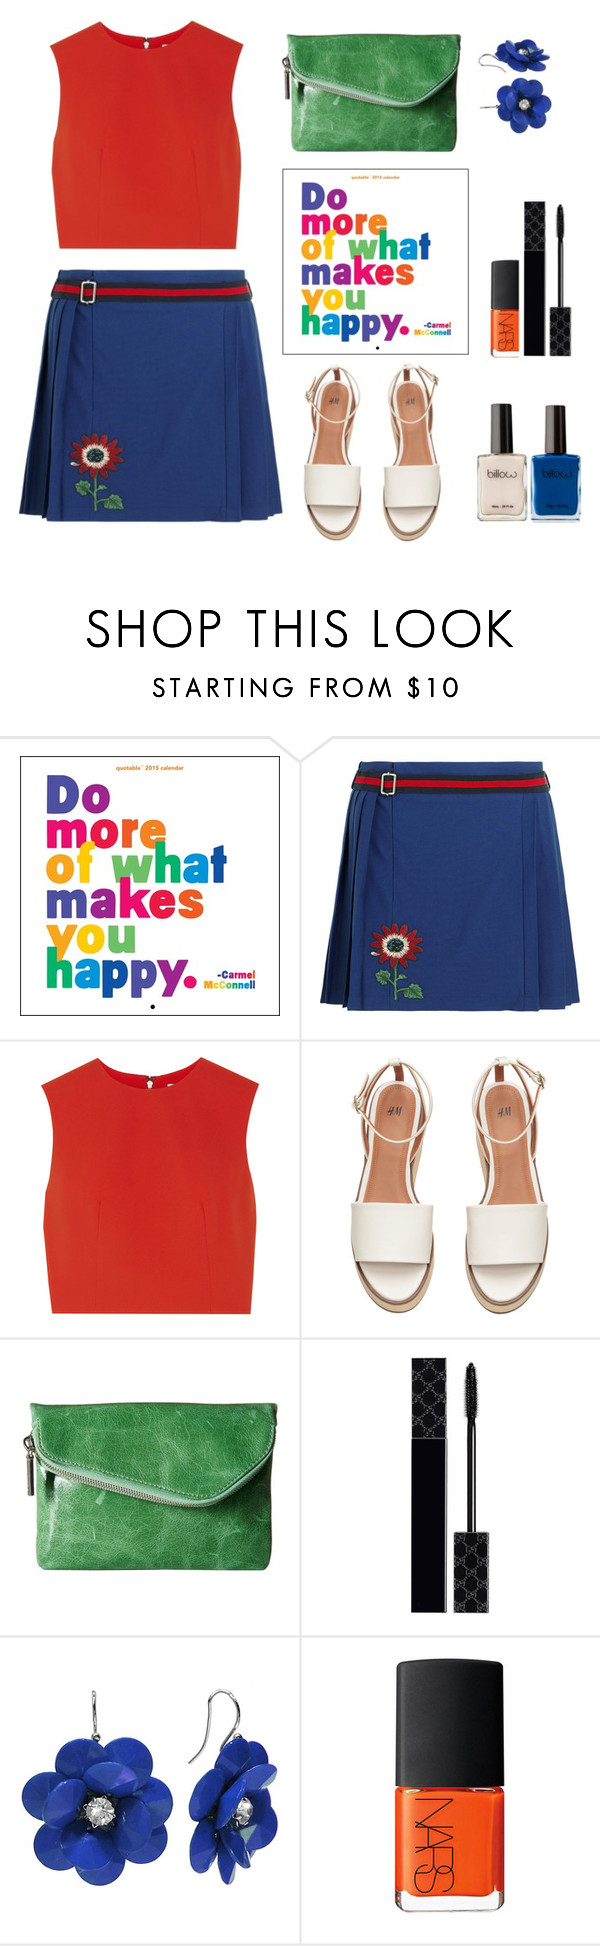 """""""Happy colors ."""" by gul07 ❤ liked on Polyvore featuring Gucci, Alice + Olivia, HOBO and NARS Cosmetics"""